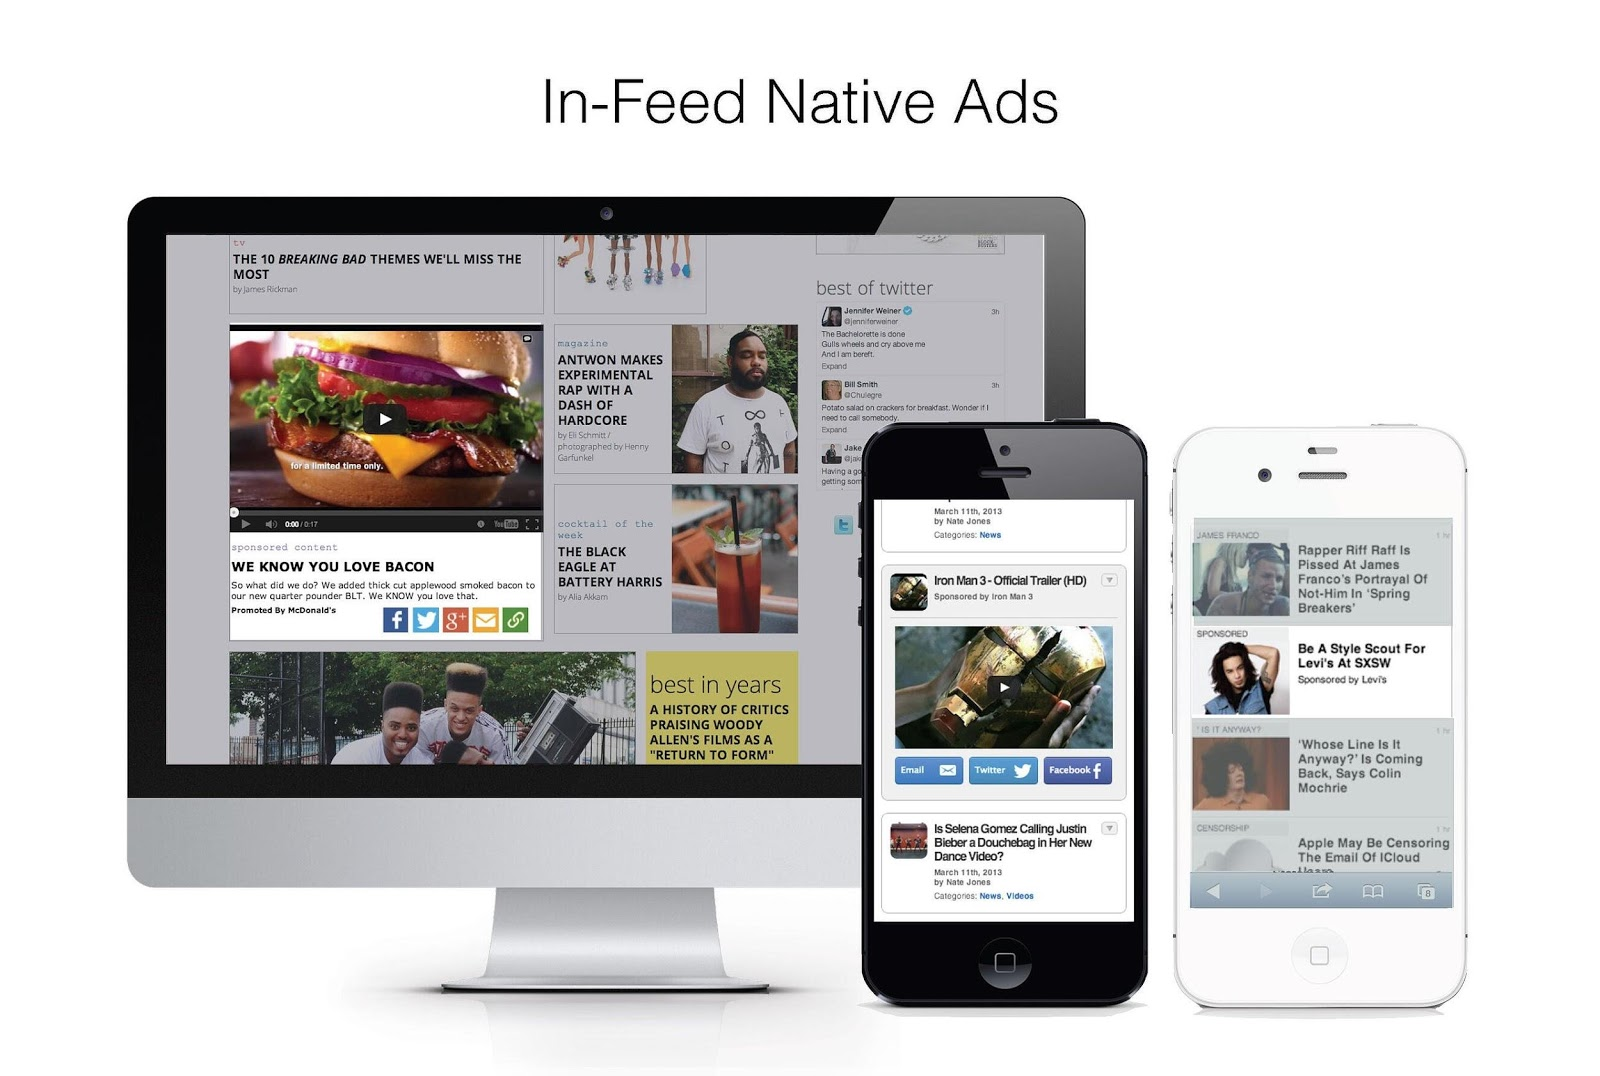 In-feed native ads